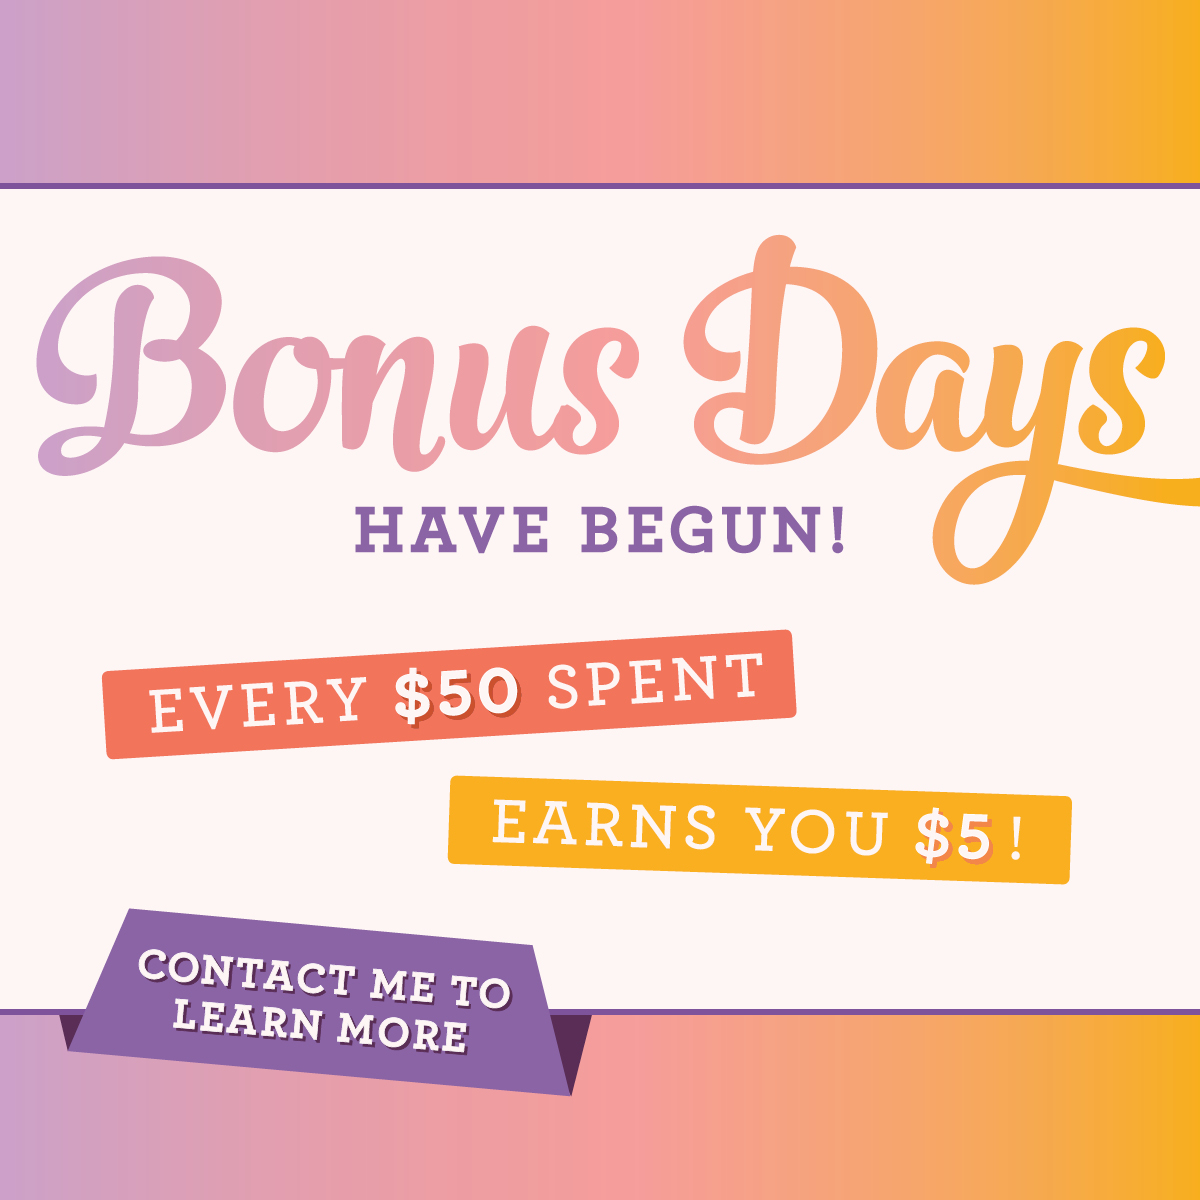 Bonus Days are here